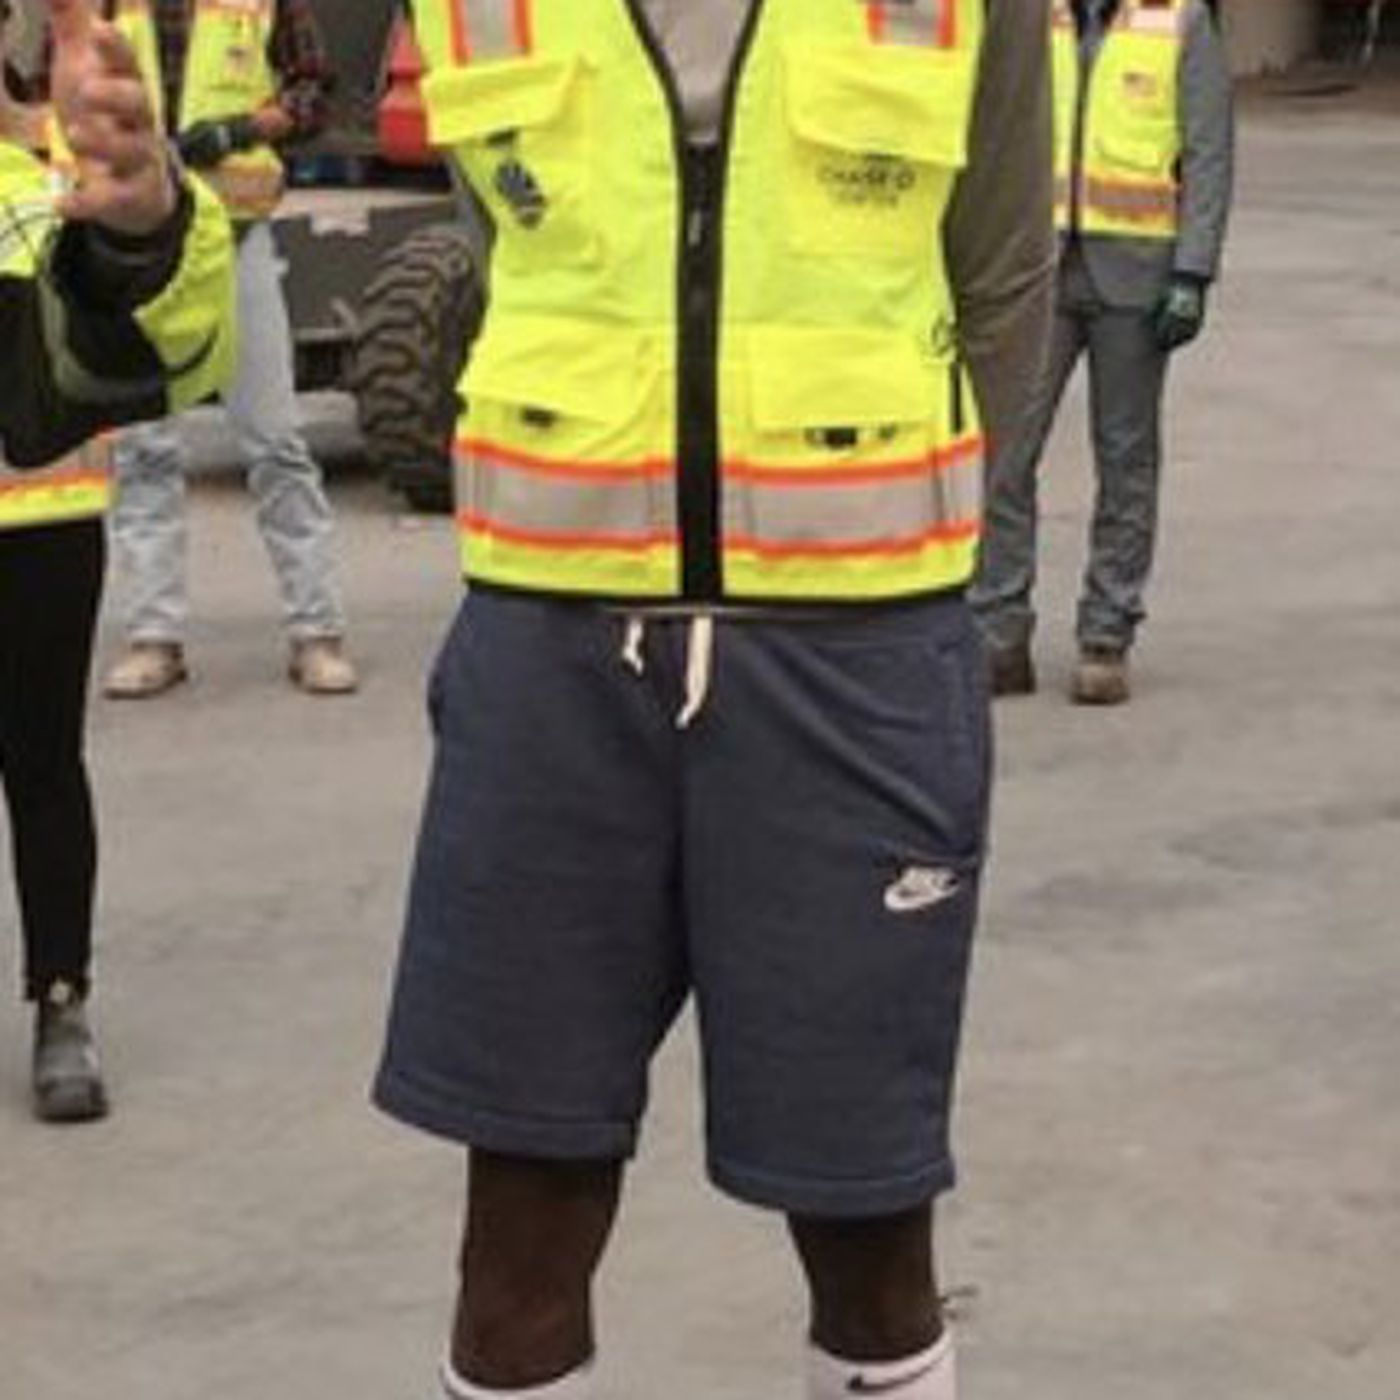 1e96bf095f7e Kevin Durant as a construction worker is the perfect Warriors drama  distraction - SBNation.com